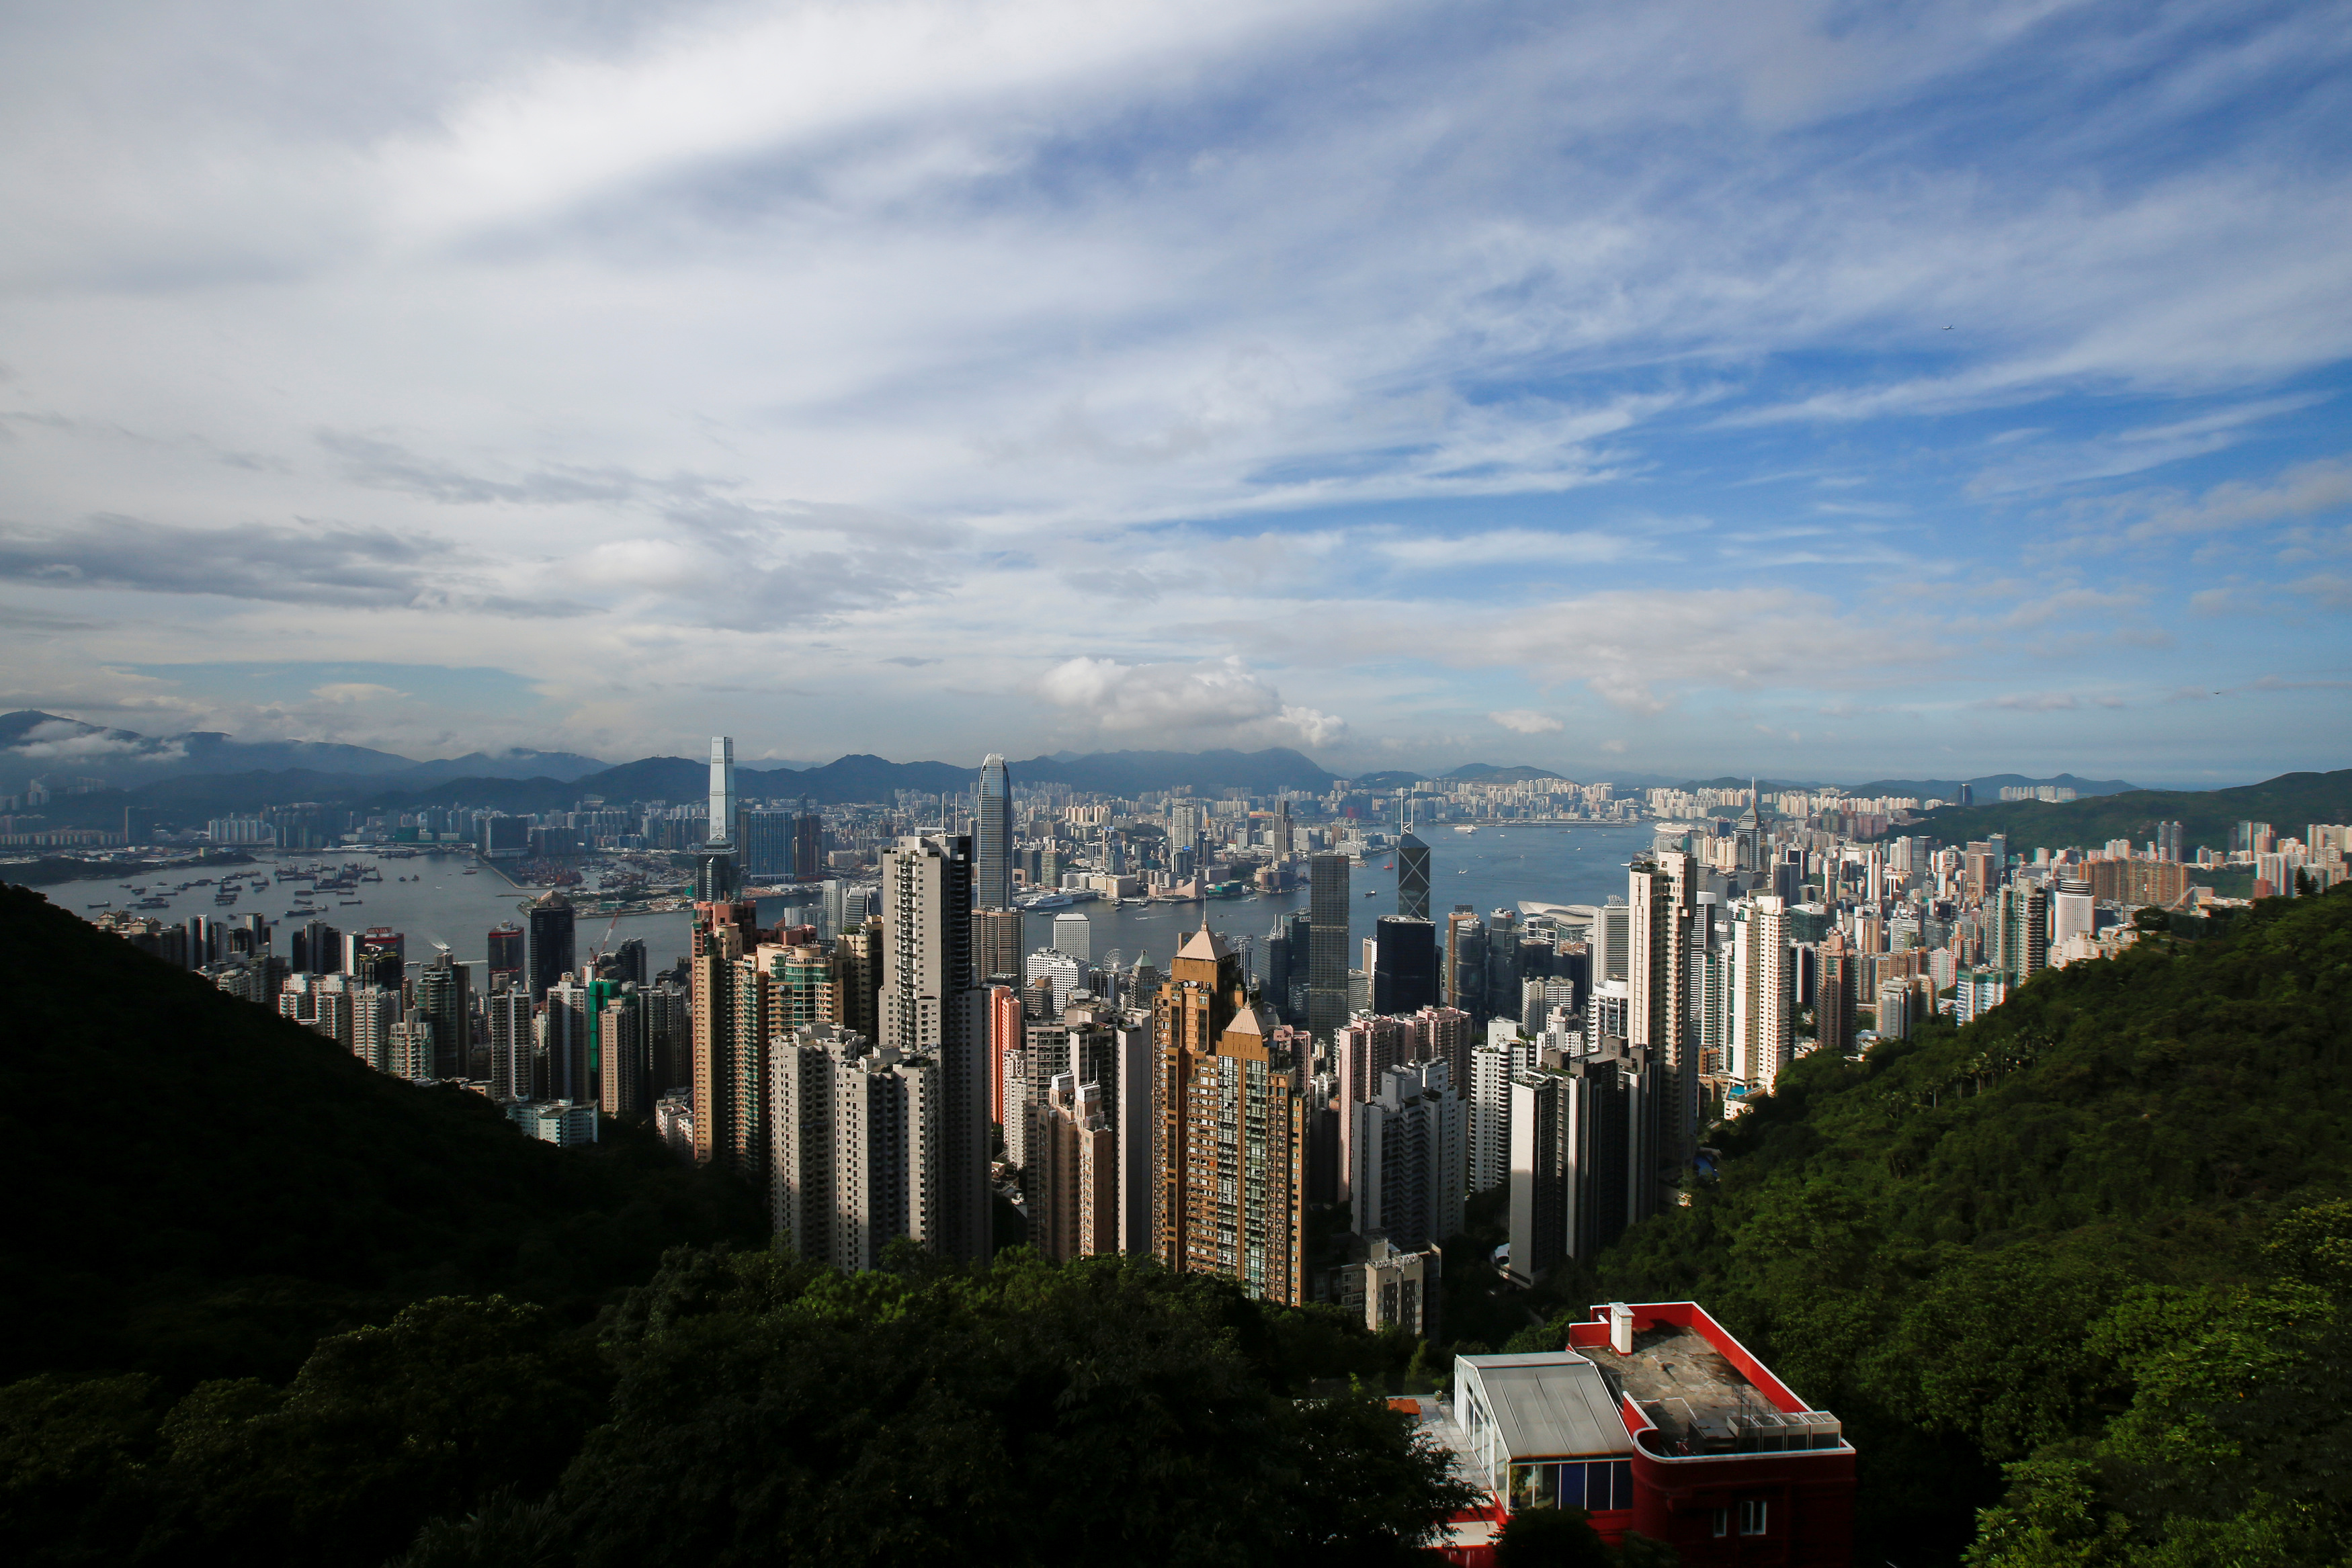 A general view of Victoria Harbour and downtown skyline is seen from the Peak in Hong Kong, China August 4, 2017. REUTERS/Bobby Yip